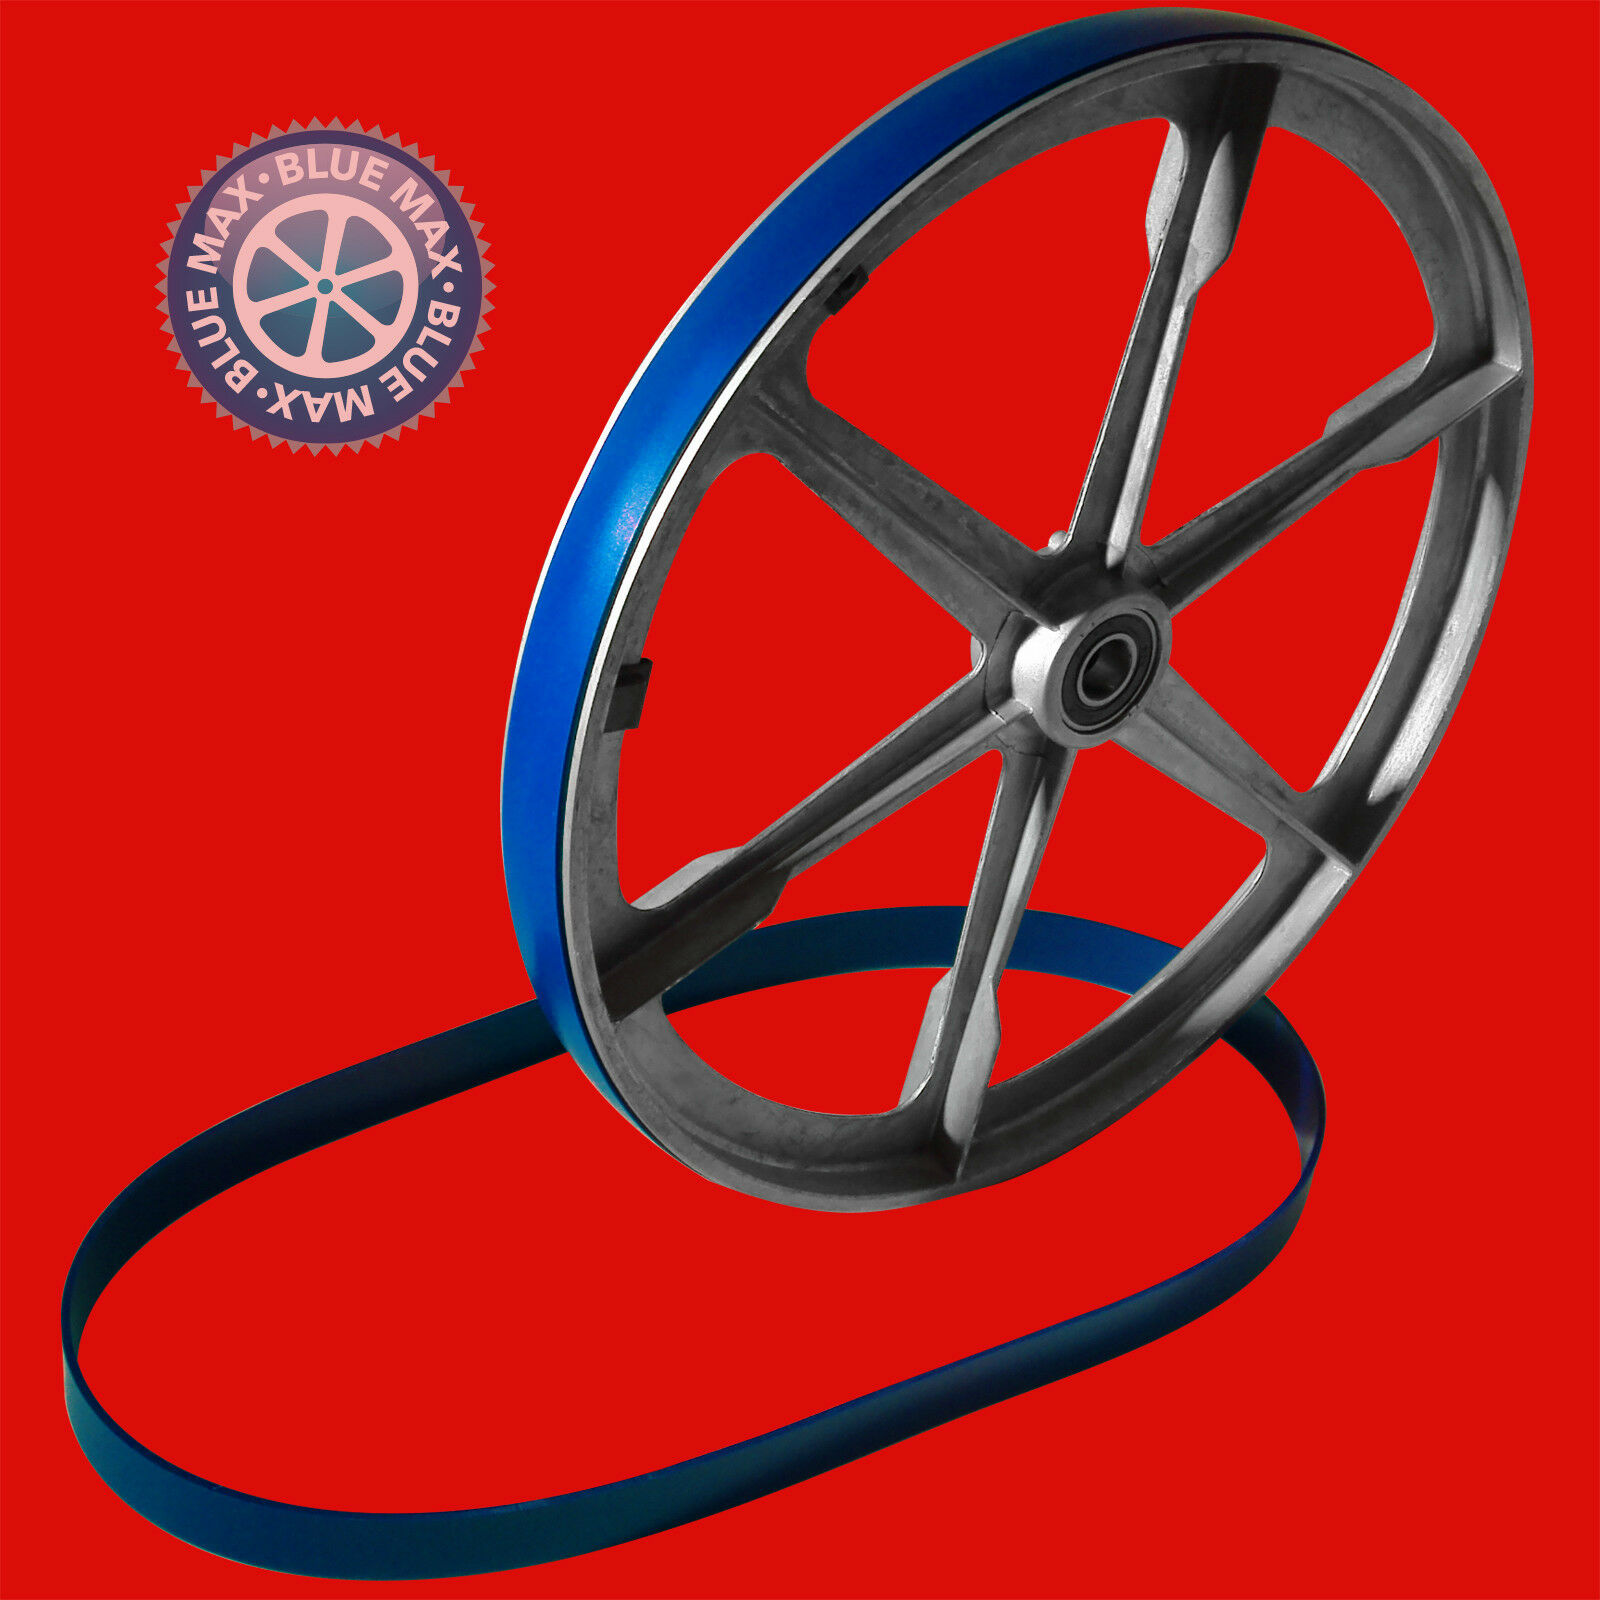 VBS900 Blau MAX ULTRA DUTY URETHANE BAND SAW TIRES FOR JET VBS-900 BAND SAW